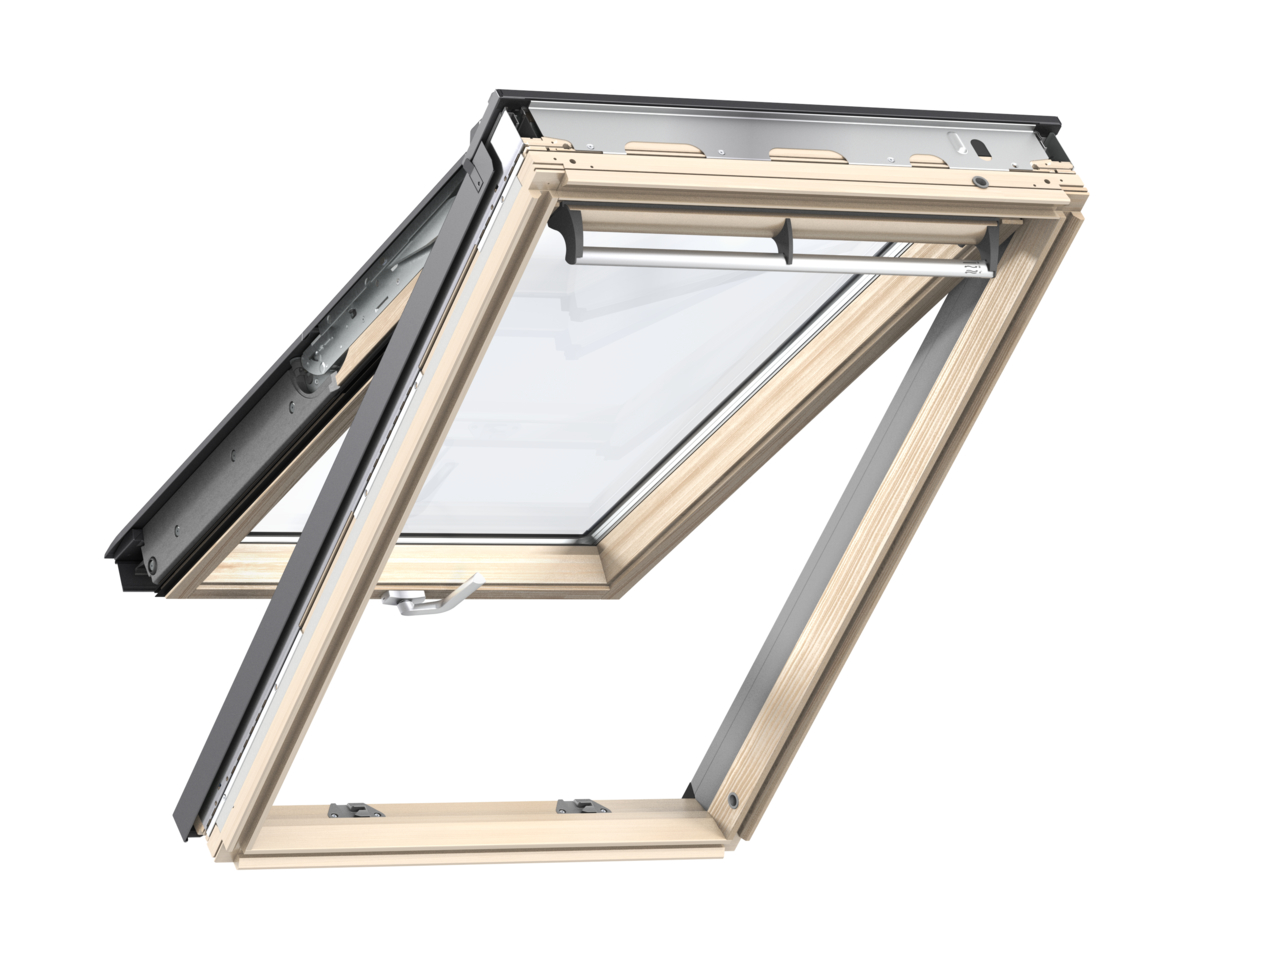 Velux GPL SK06 1140 x 1180mm Top Hung Standard 70Pane Roof Window - Pine